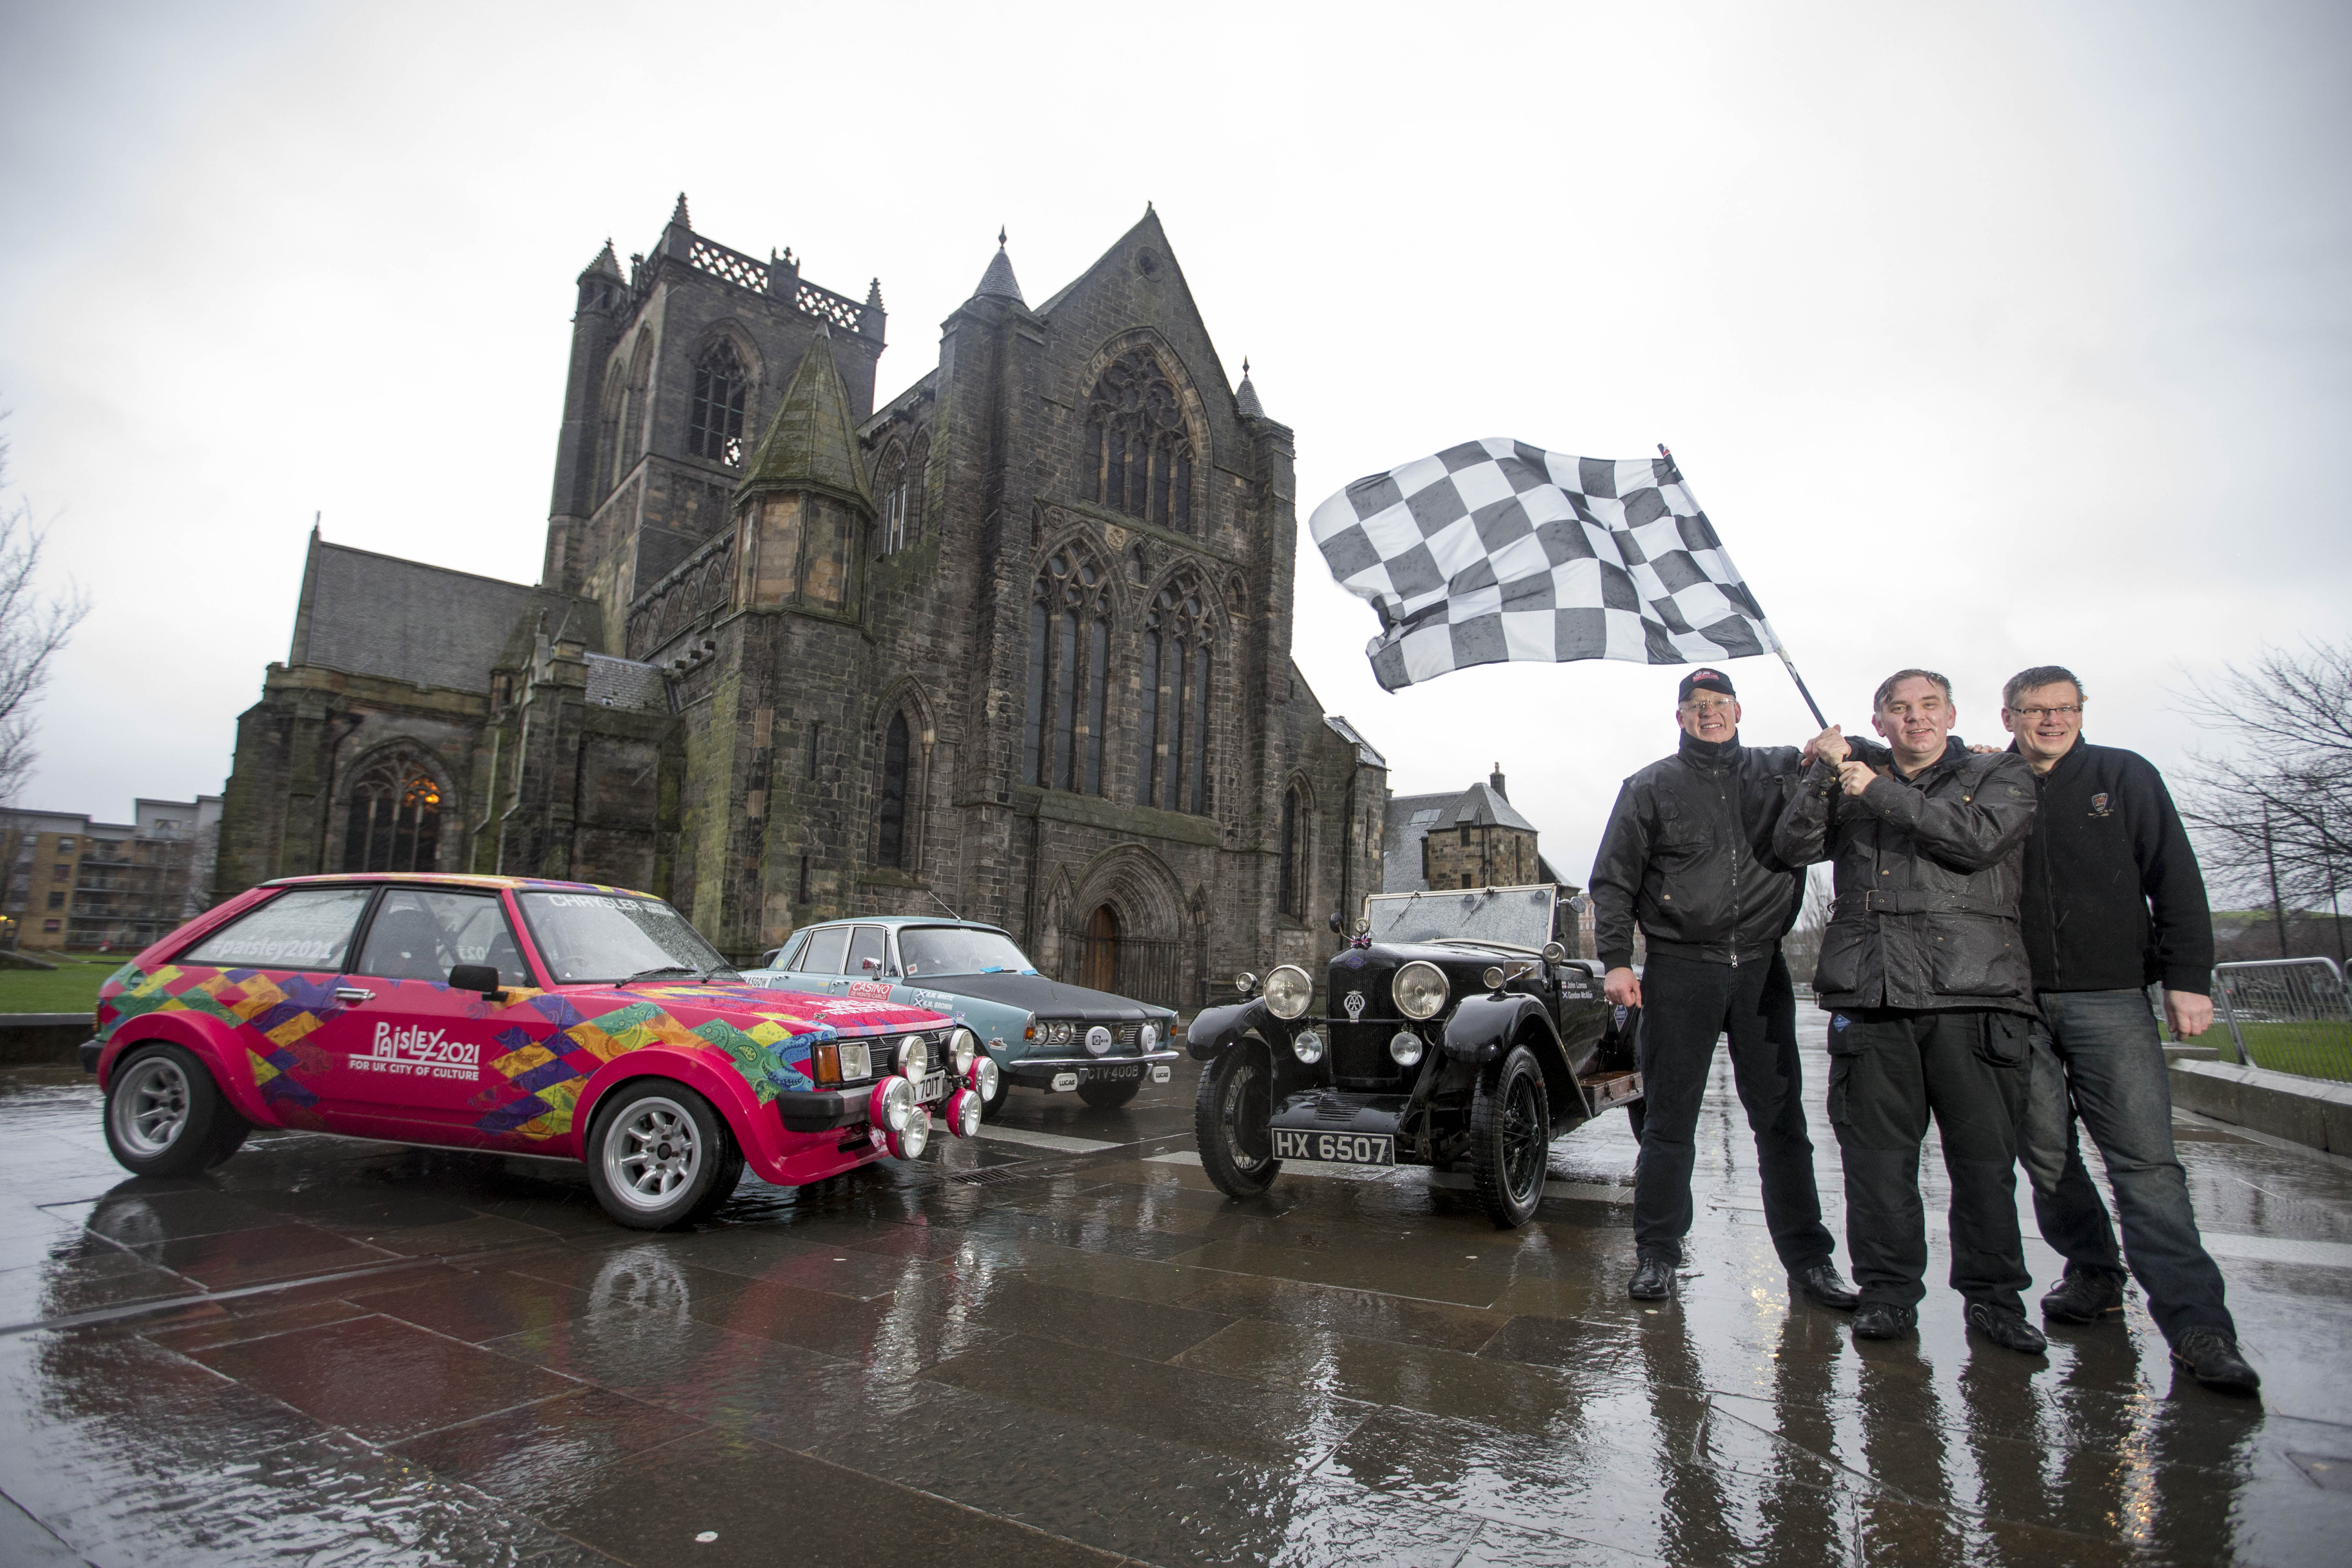 26/01/16...